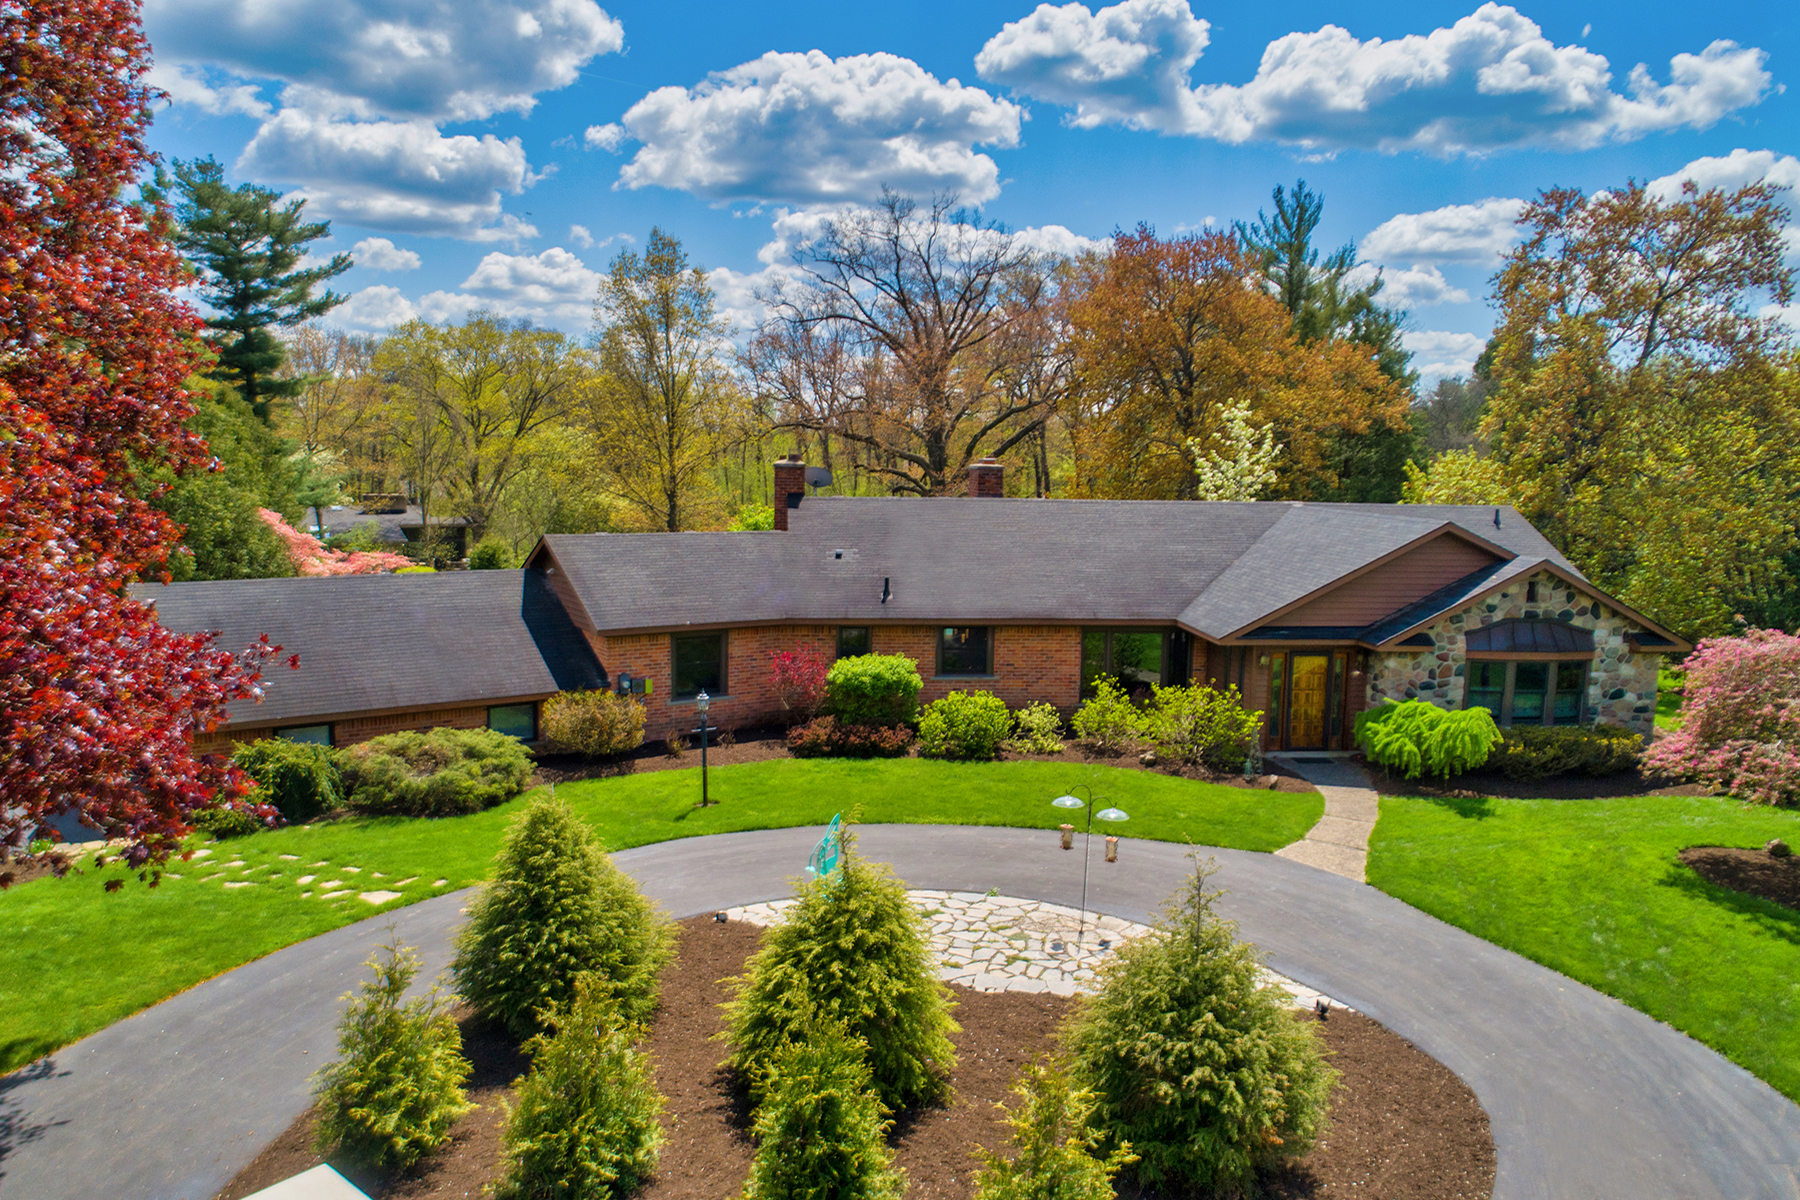 Single Family Homes for Sale at Franklin Village 30285 Hickory Lane Franklin, Michigan 48025 United States